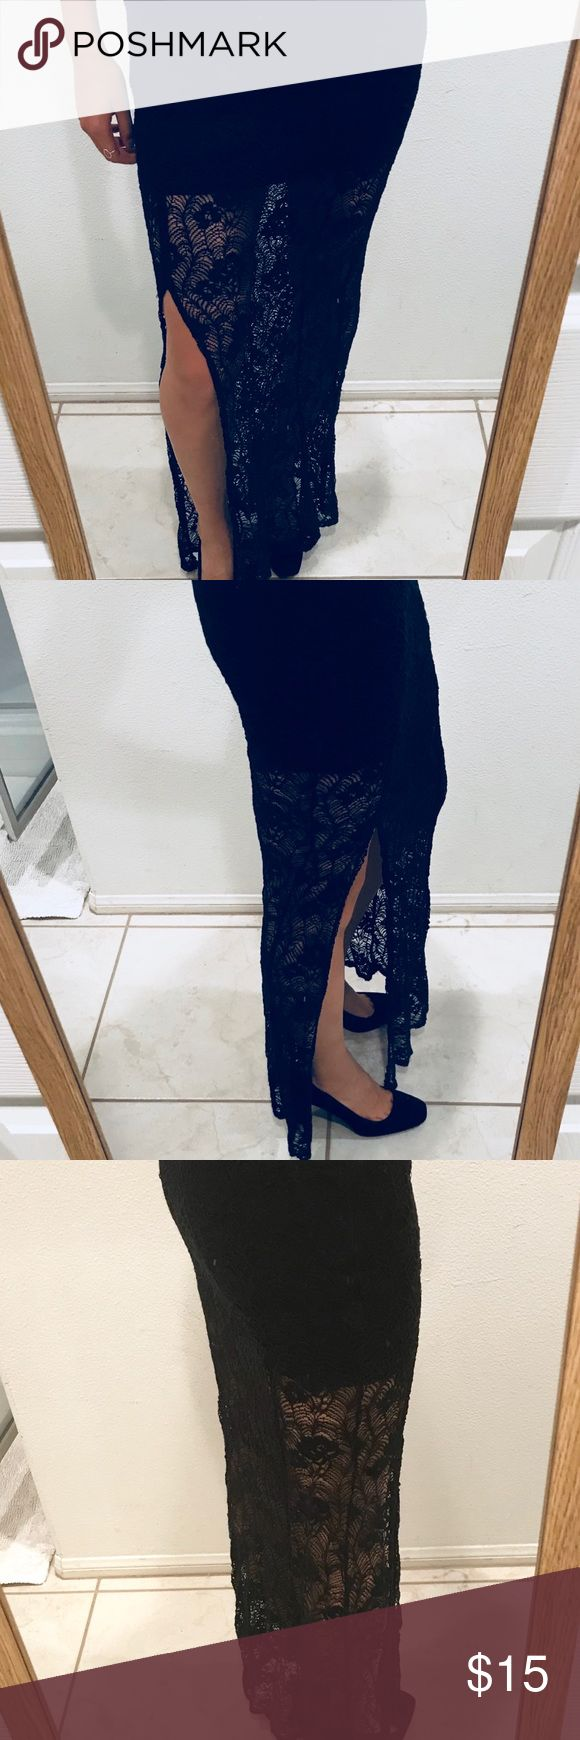 Cute black lace maxi skirt with thigh slit Trendy piece for your wardrobe. Super cute with a tank or simple top. Fits size 4/6 bottoms. Zipper completely zips but missing the top metal clasp. Tobi Skirts Maxi